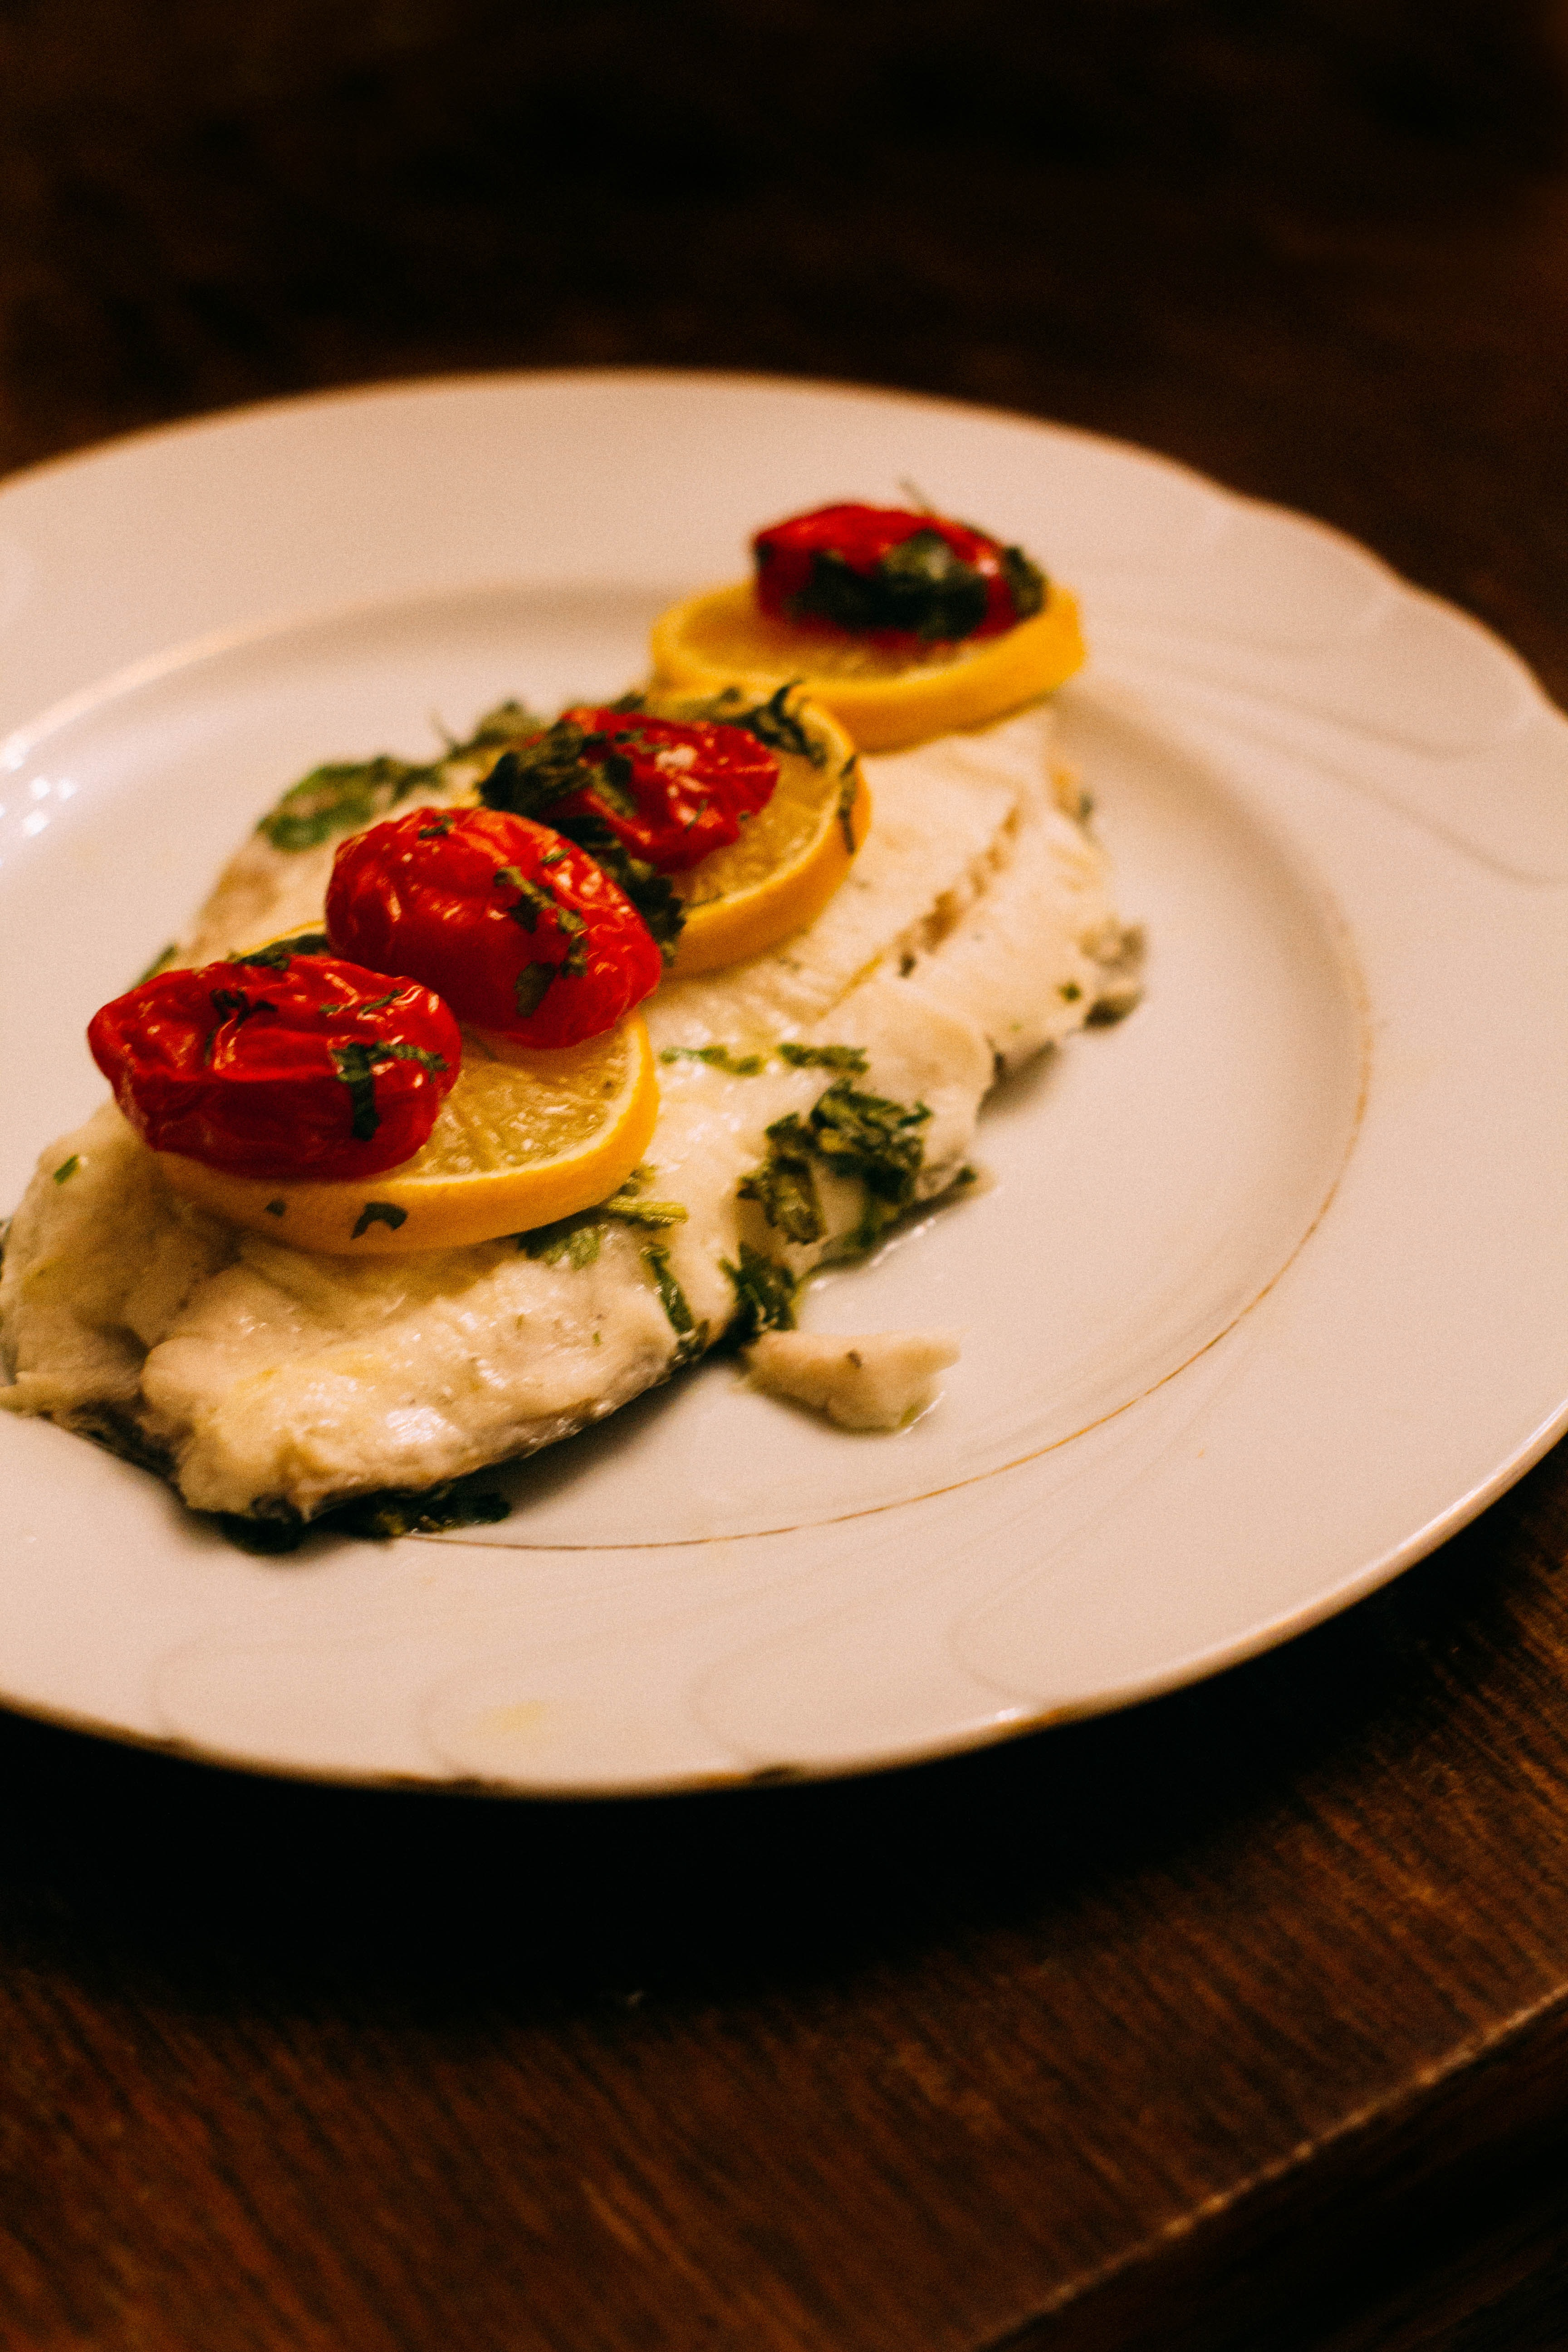 whitefish filet topped with lemon and cherry tomatoes, garnished with greens